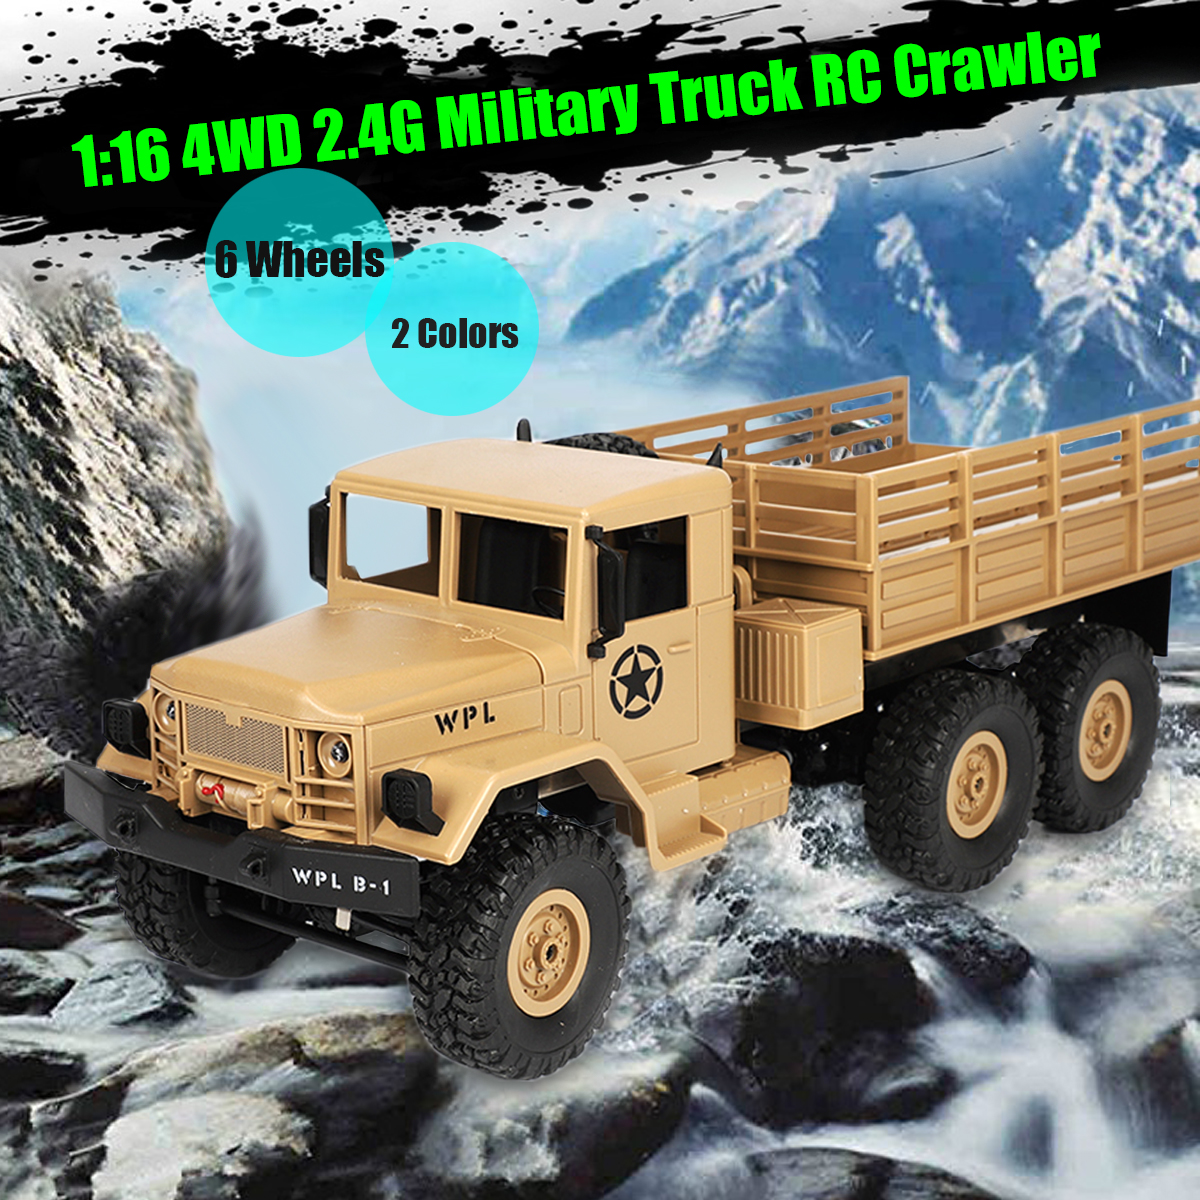 RC Crawler Military Truck 1:16 2.4G 6WD 6 Wheels Off Road Rock Car Toy RTR Yellow/Green Reinforced?Plastic Chassis Headlights